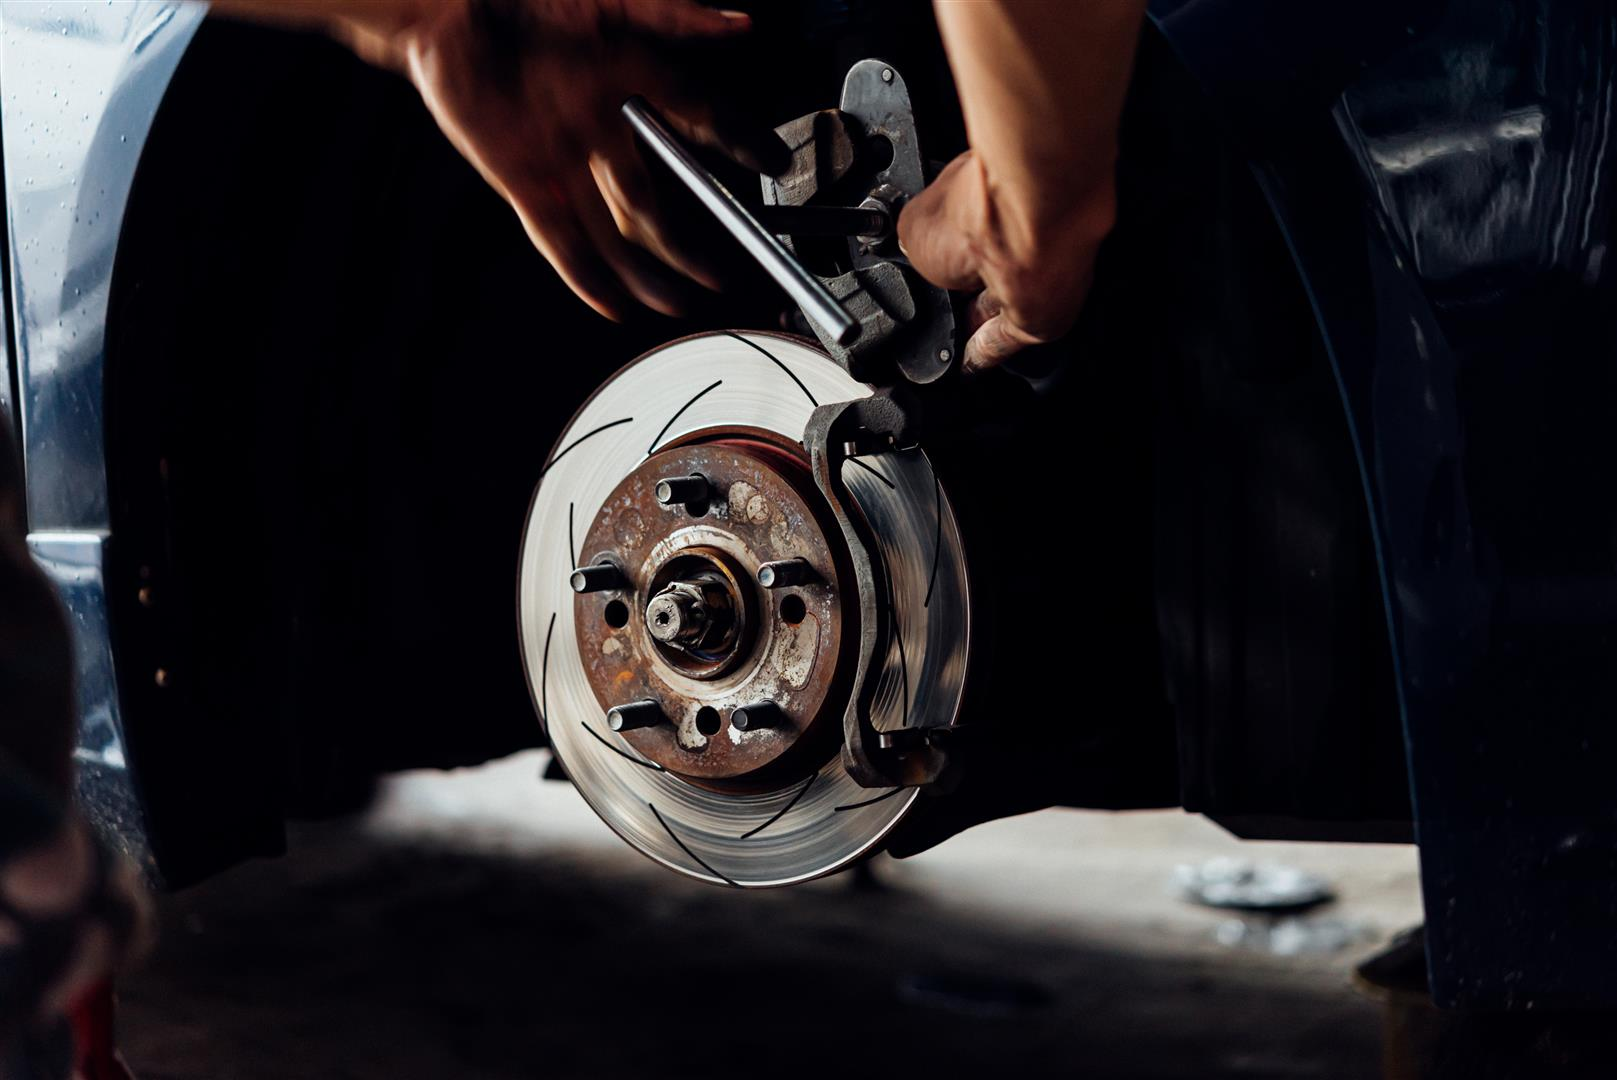 What People Should Know About Brake Systems